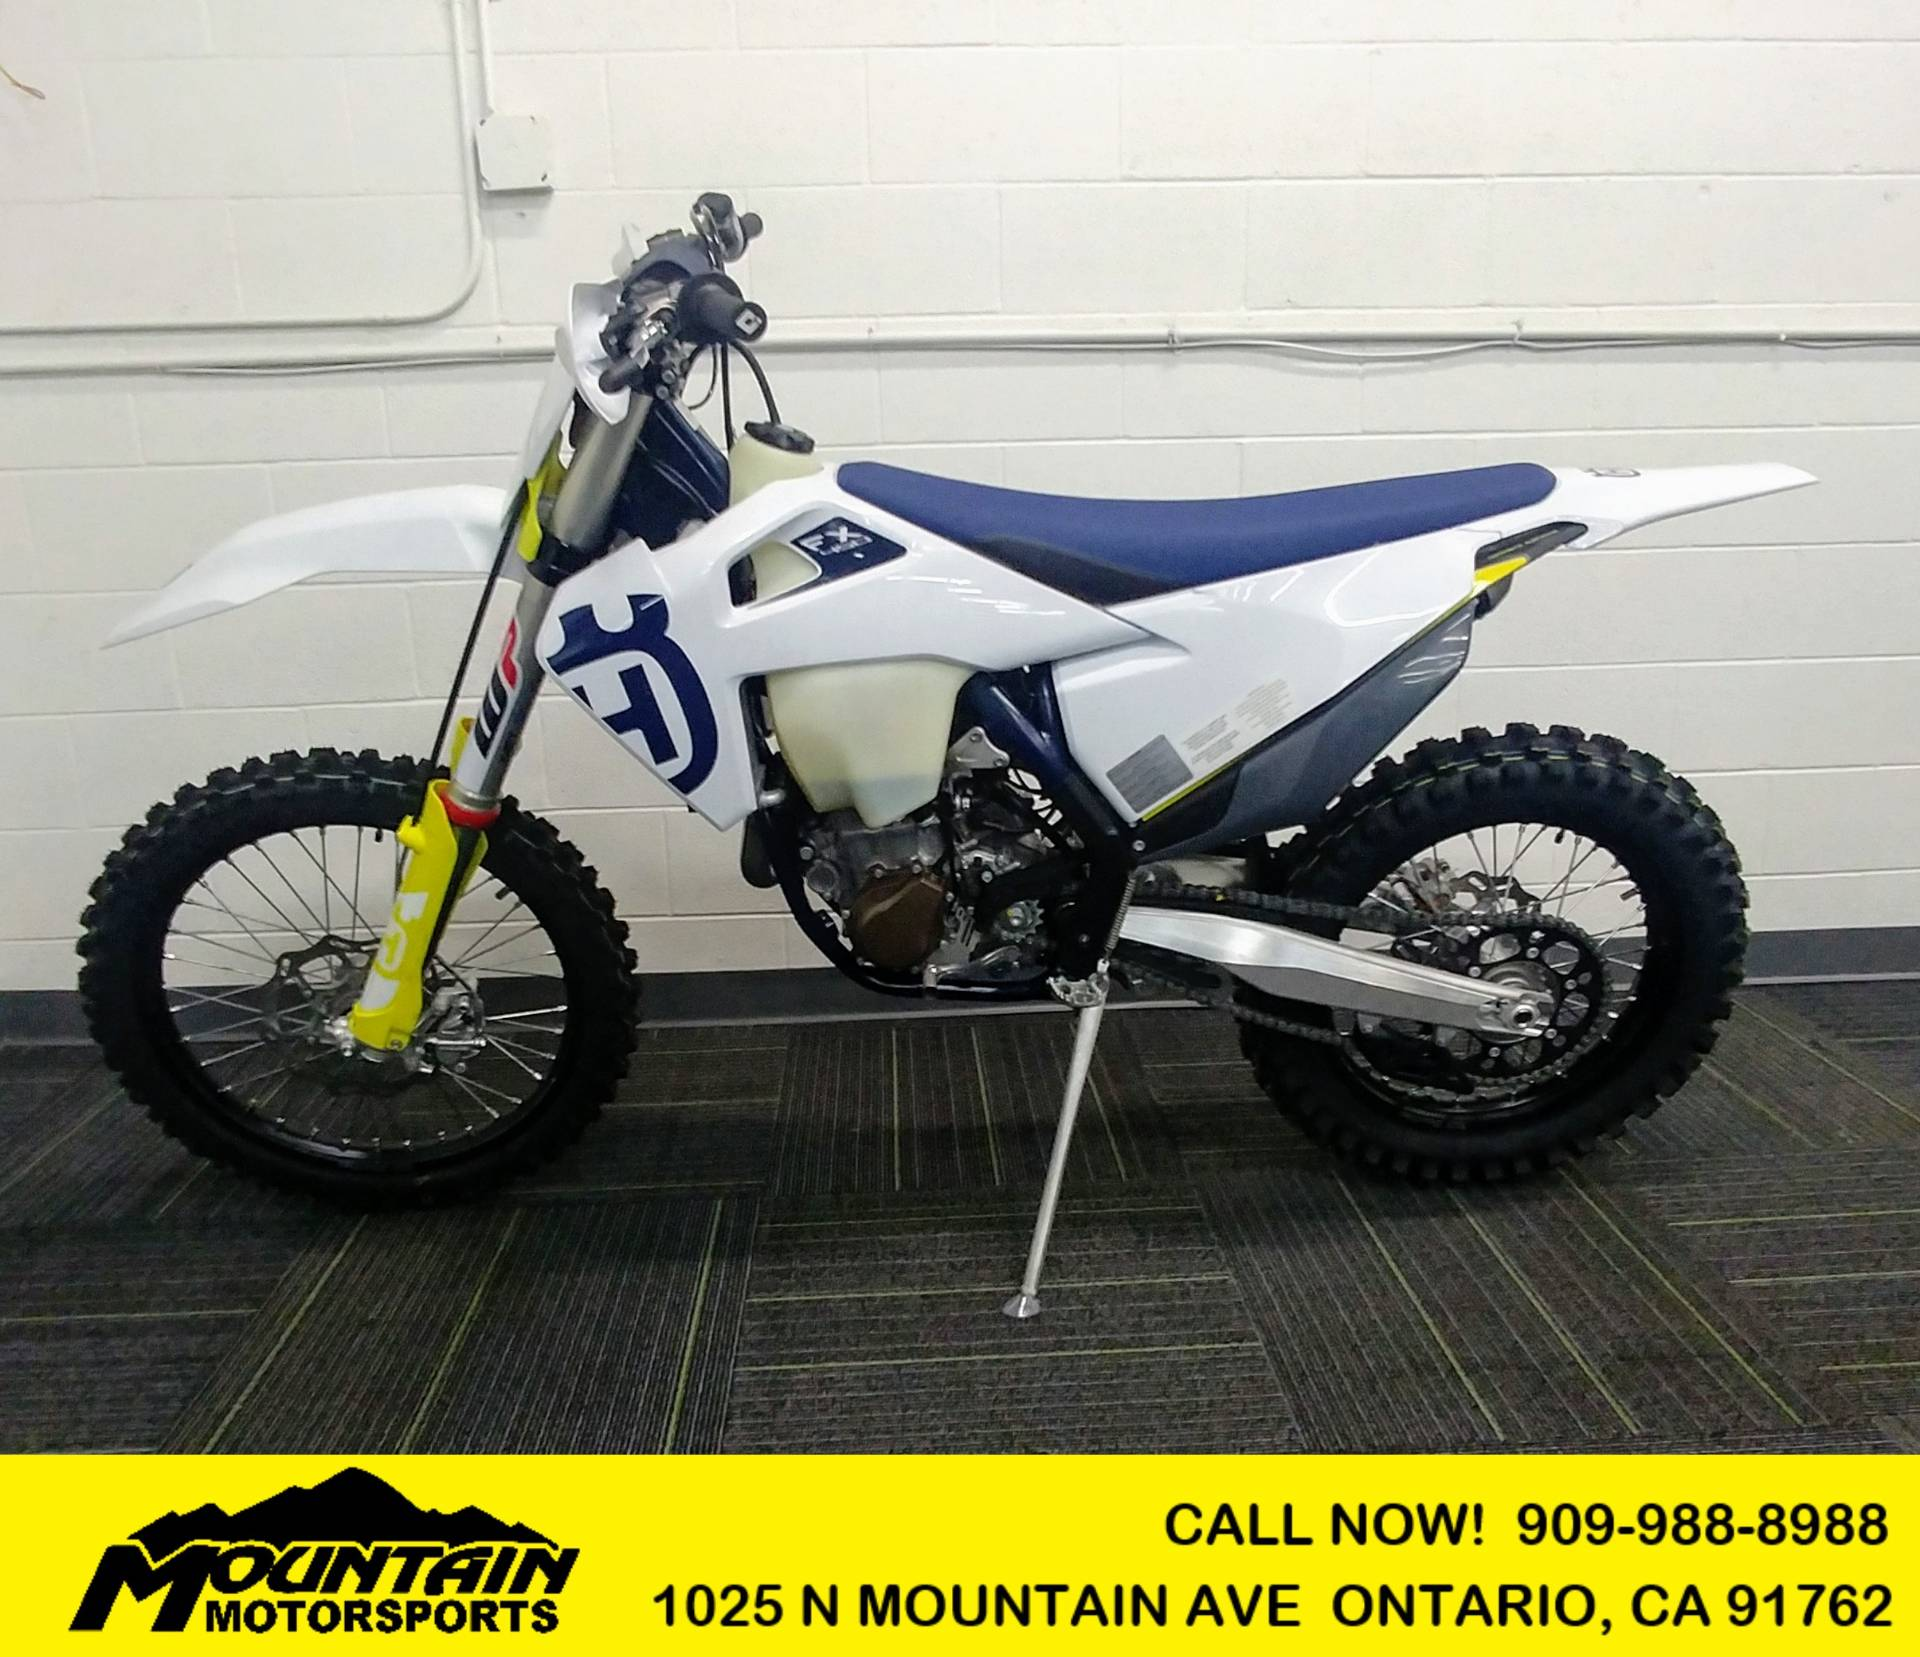 2020 Husqvarna FX 450 in Ontario, California - Photo 1